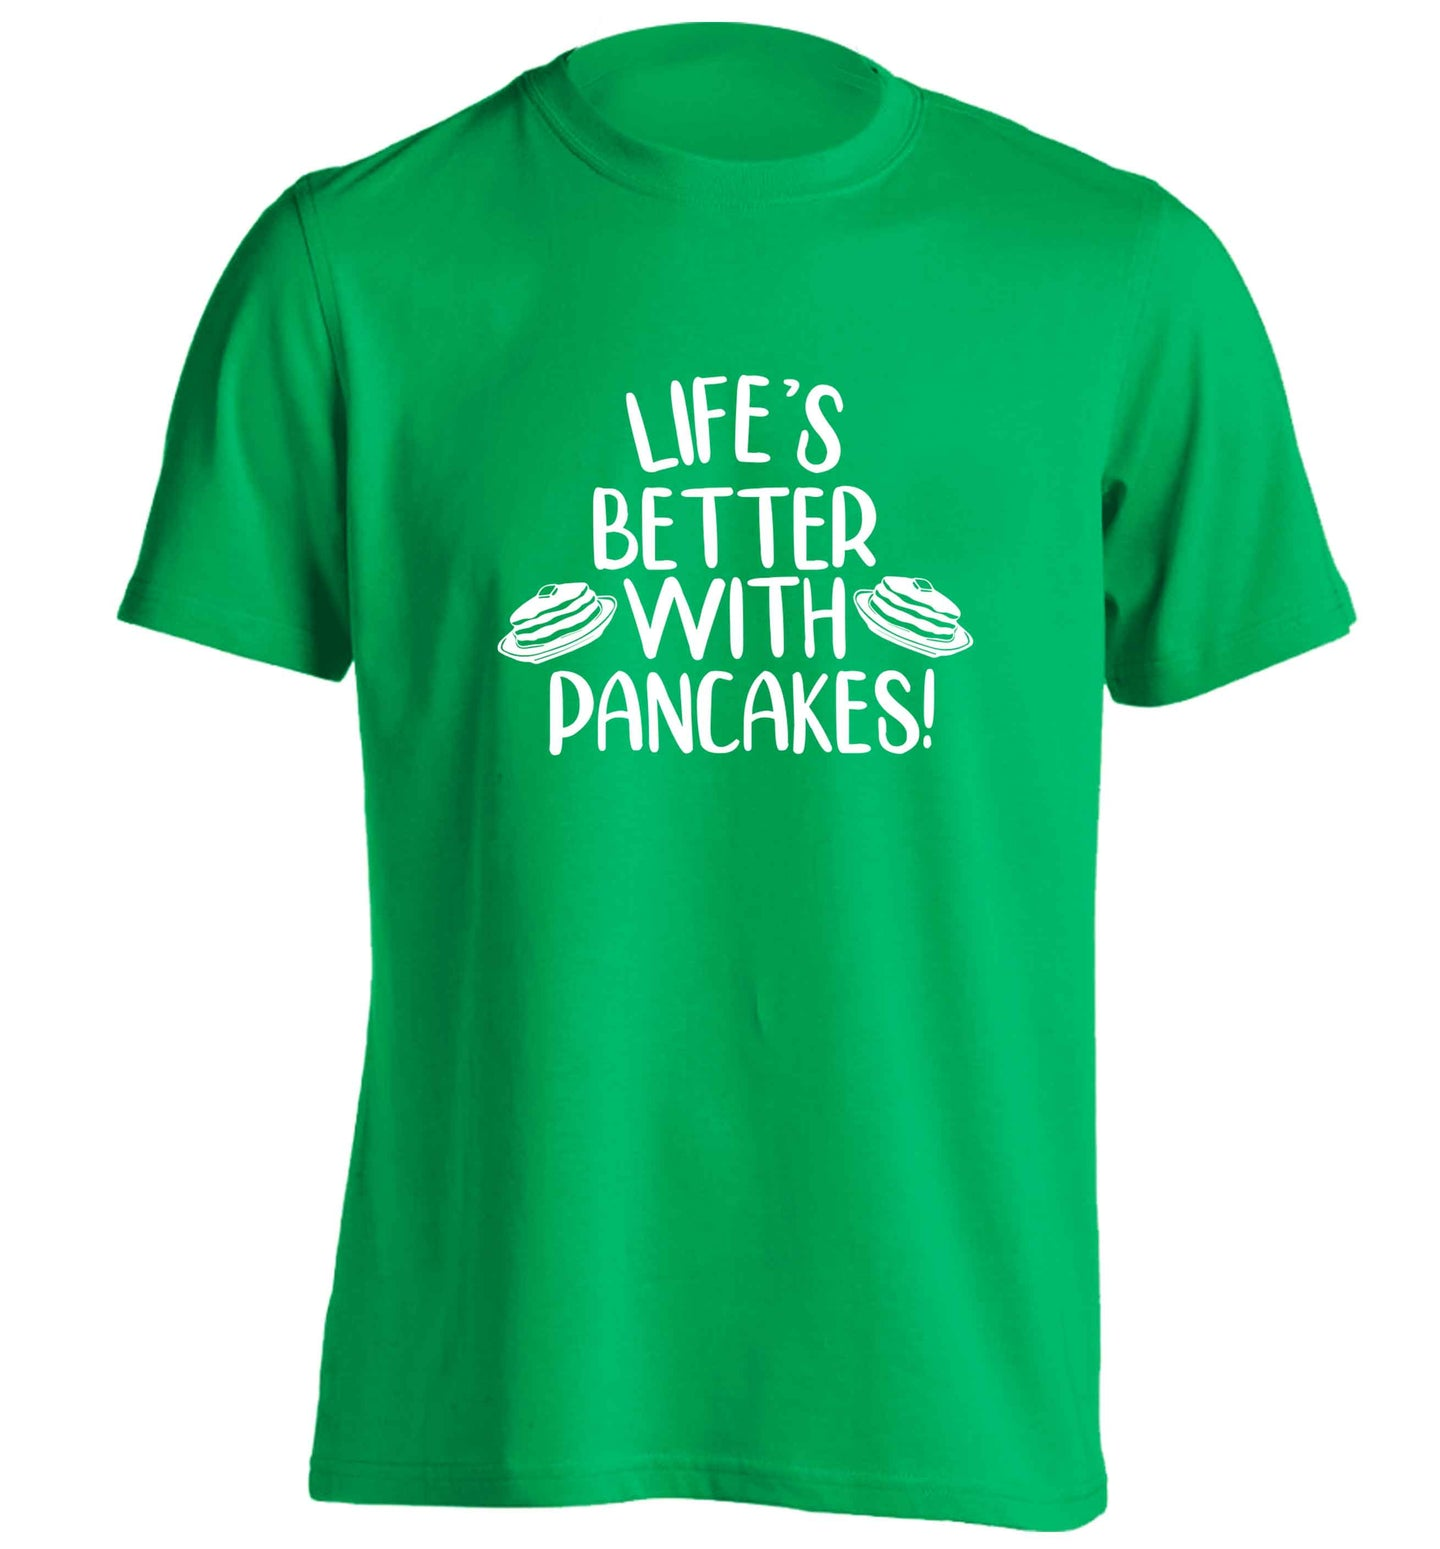 Life's better with pancakes adults unisex green Tshirt 2XL